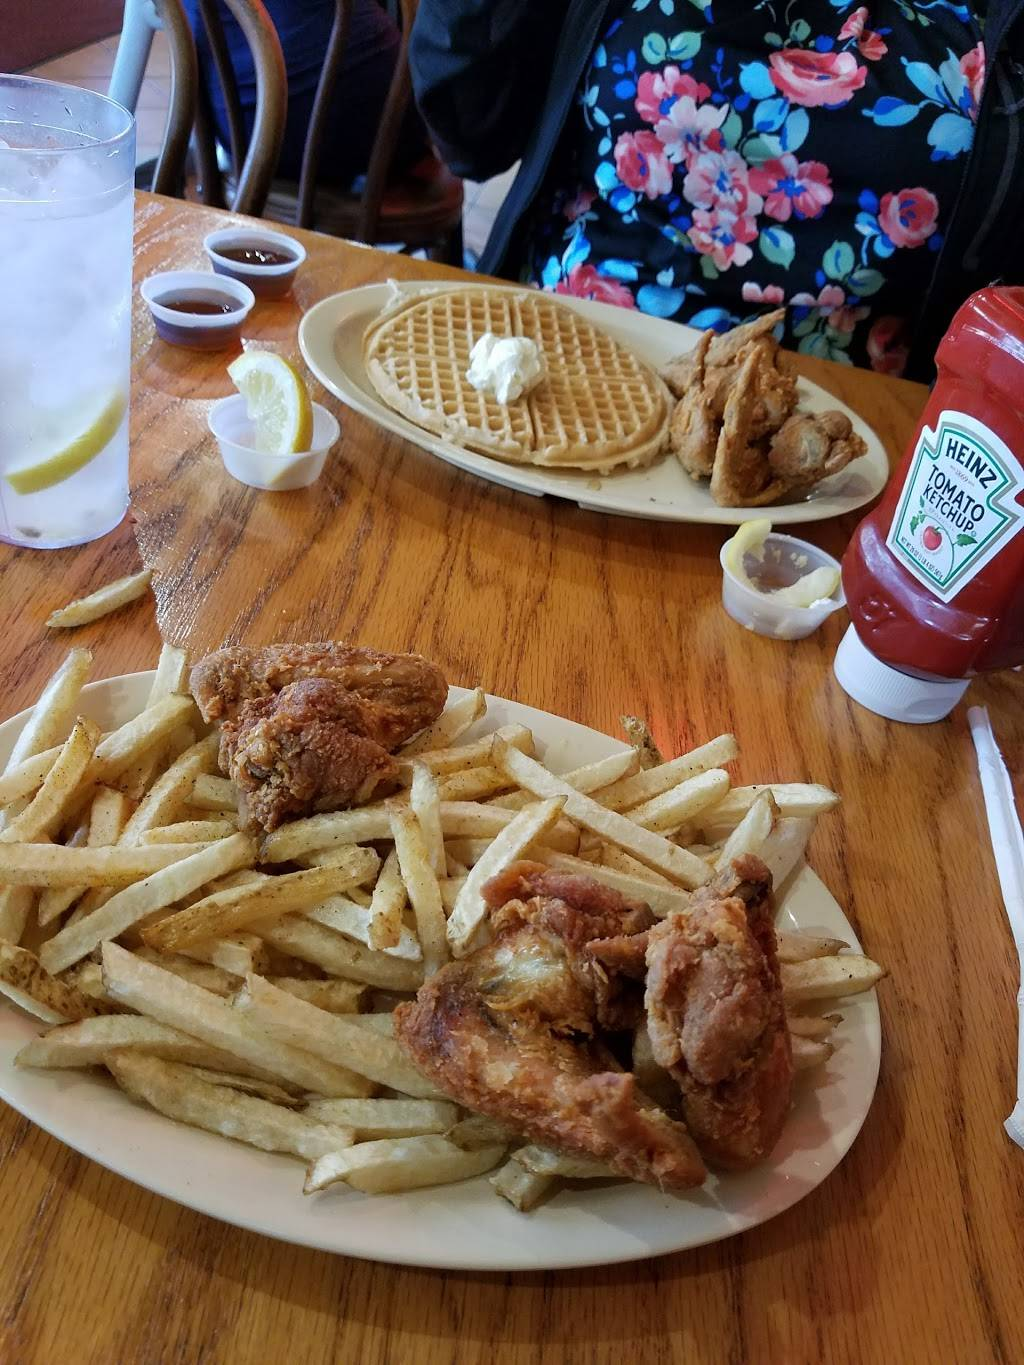 Roscoes House of Chicken and Waffles   restaurant   621 W Manchester Blvd, Inglewood, CA 90301, USA   3109814141 OR +1 310-981-4141